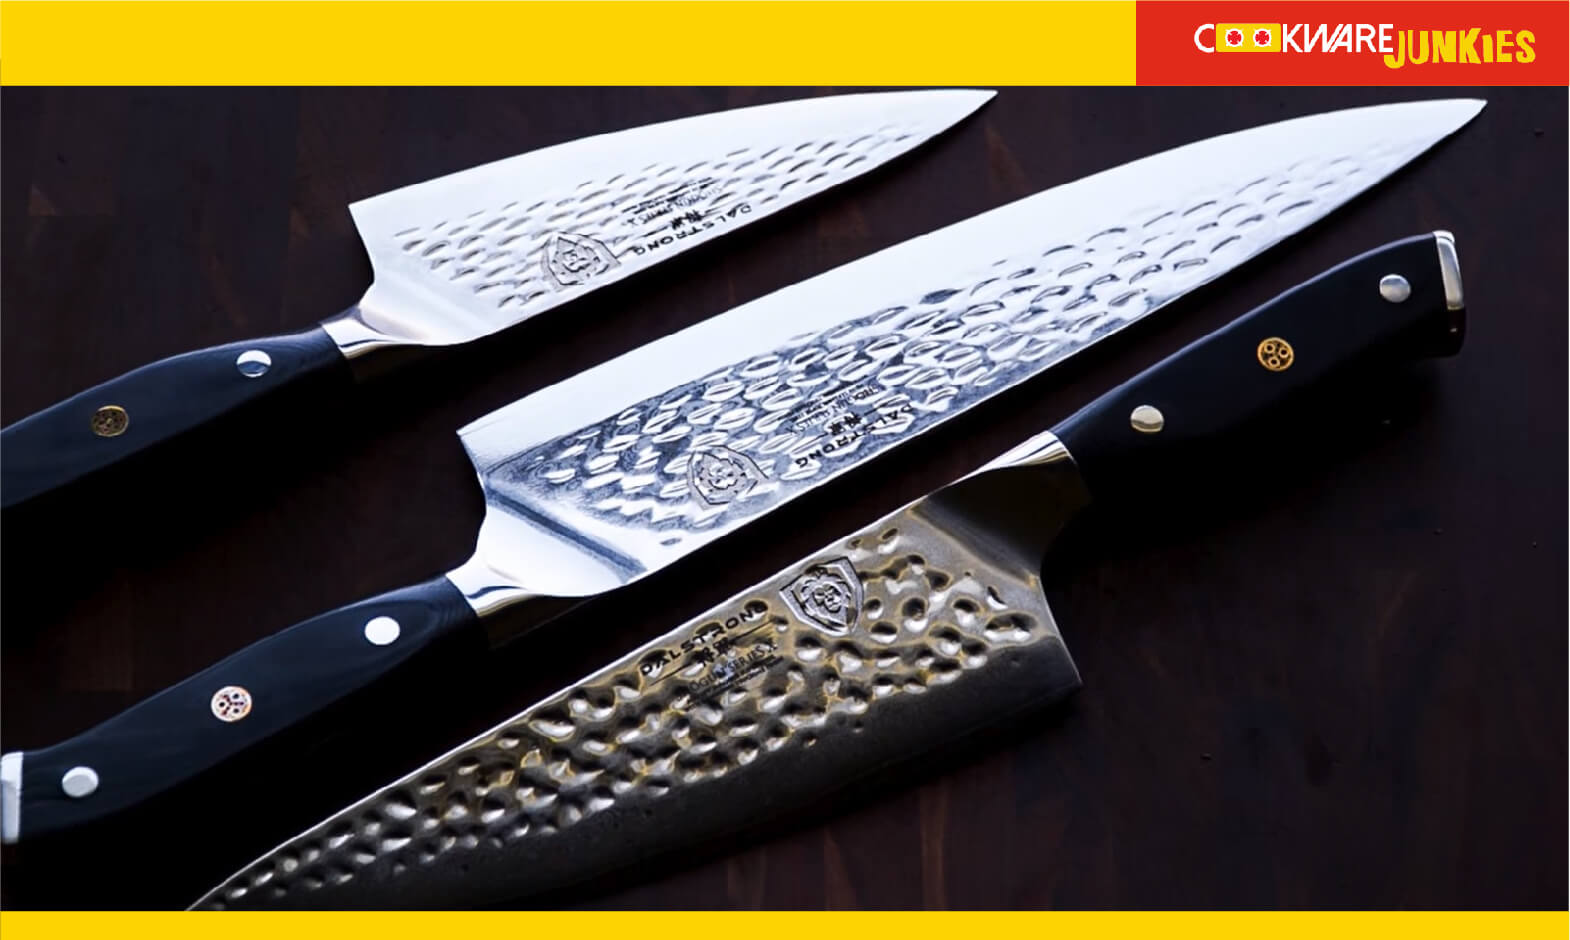 Three Dalstrong Knives with black background